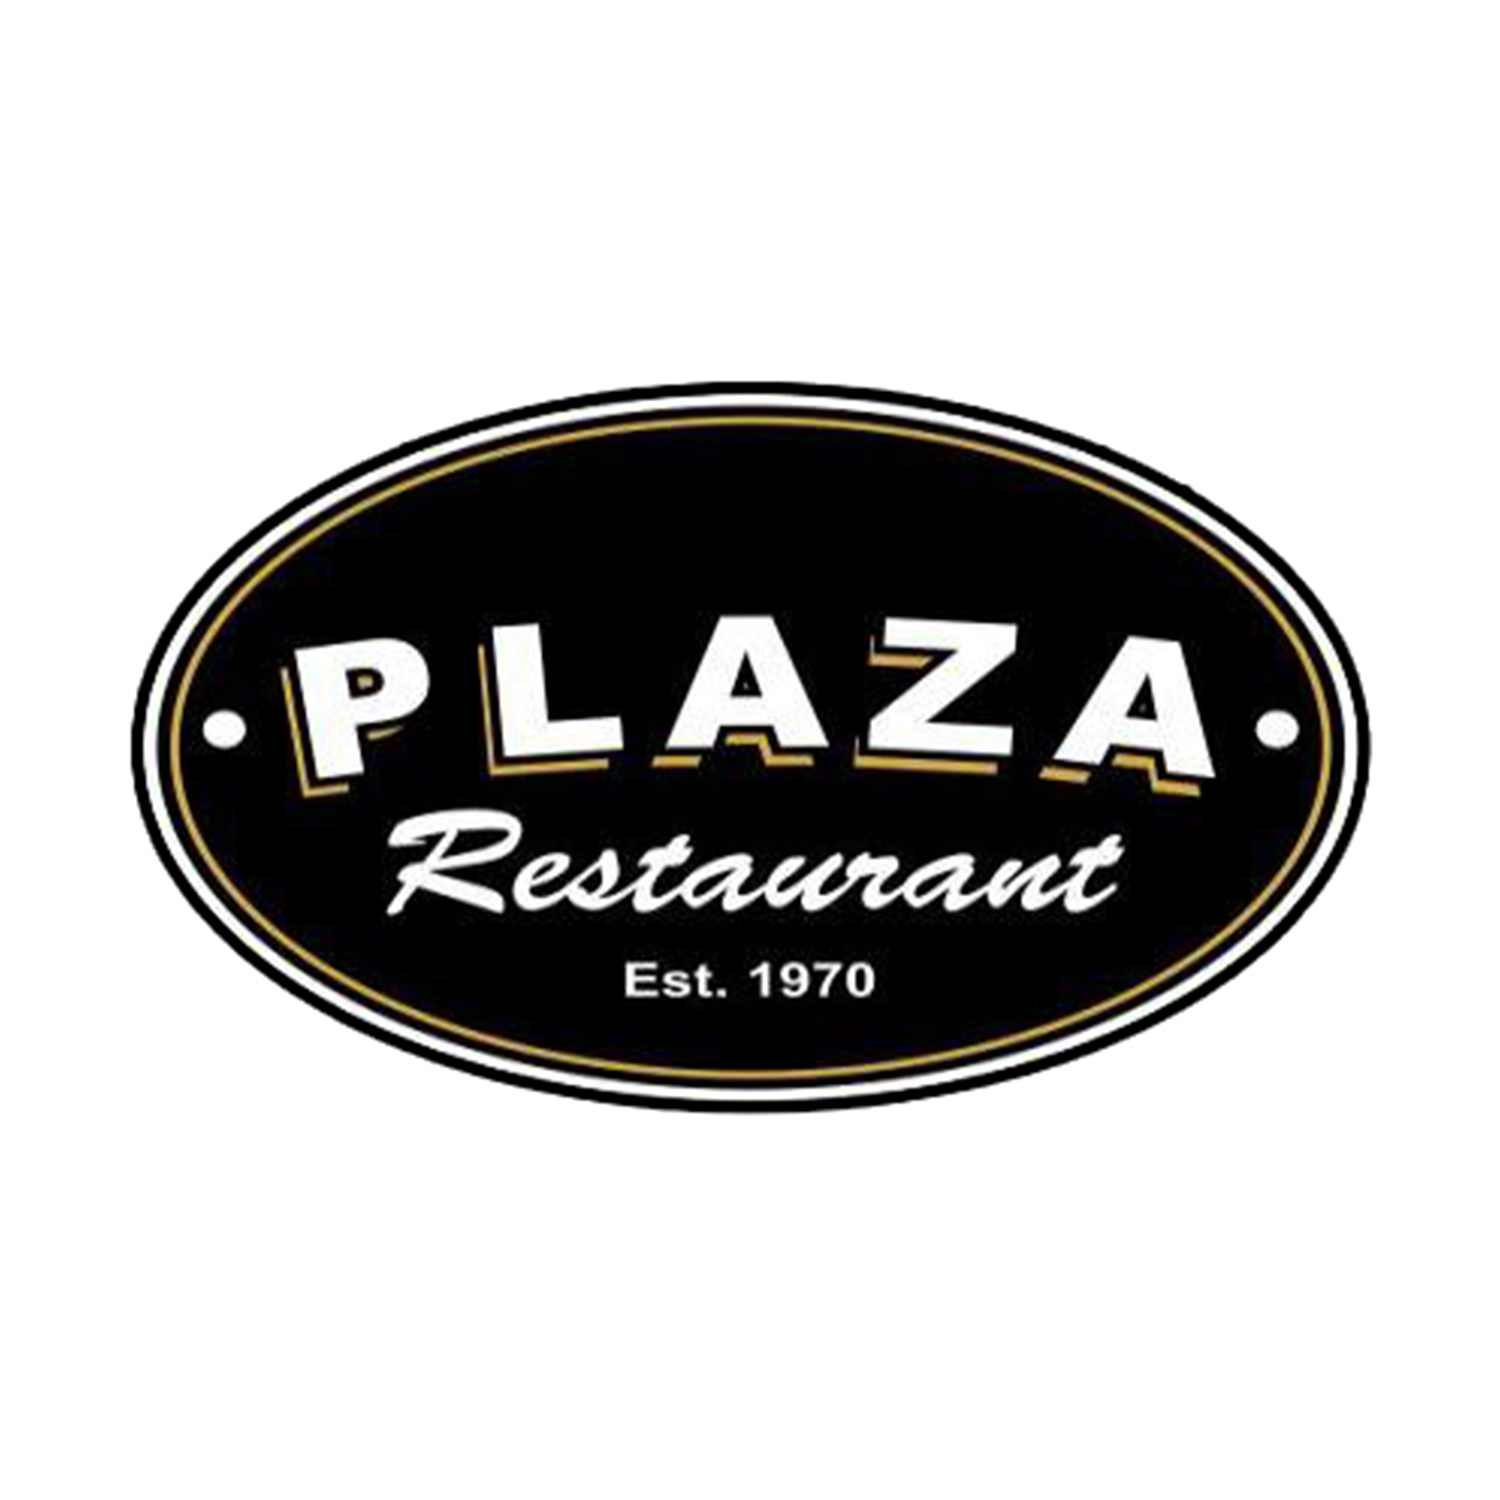 Plaza Restaurant : CLASSIC DINER-STYLE RESTAURANT | BREAKFAST | LUNCH | GREEK SPECIALTIES.